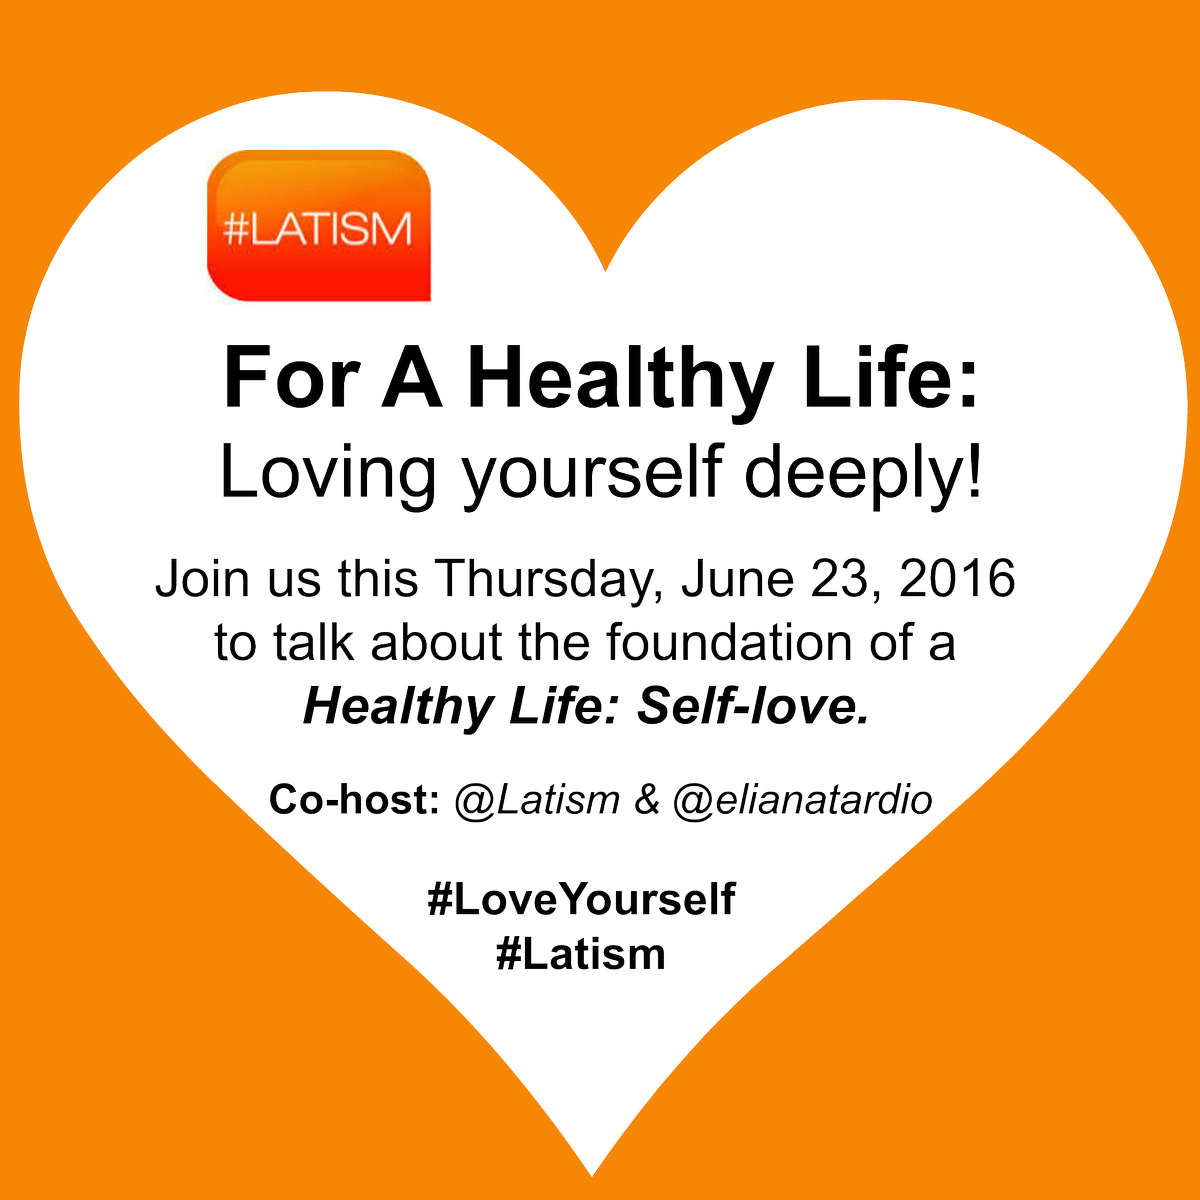 Join us this Thursday at 9PM with @ELIANATARDIO: https://t.co/paFxkIErrl #LATISM #LoveYourself https://t.co/sZDDpIMxxu